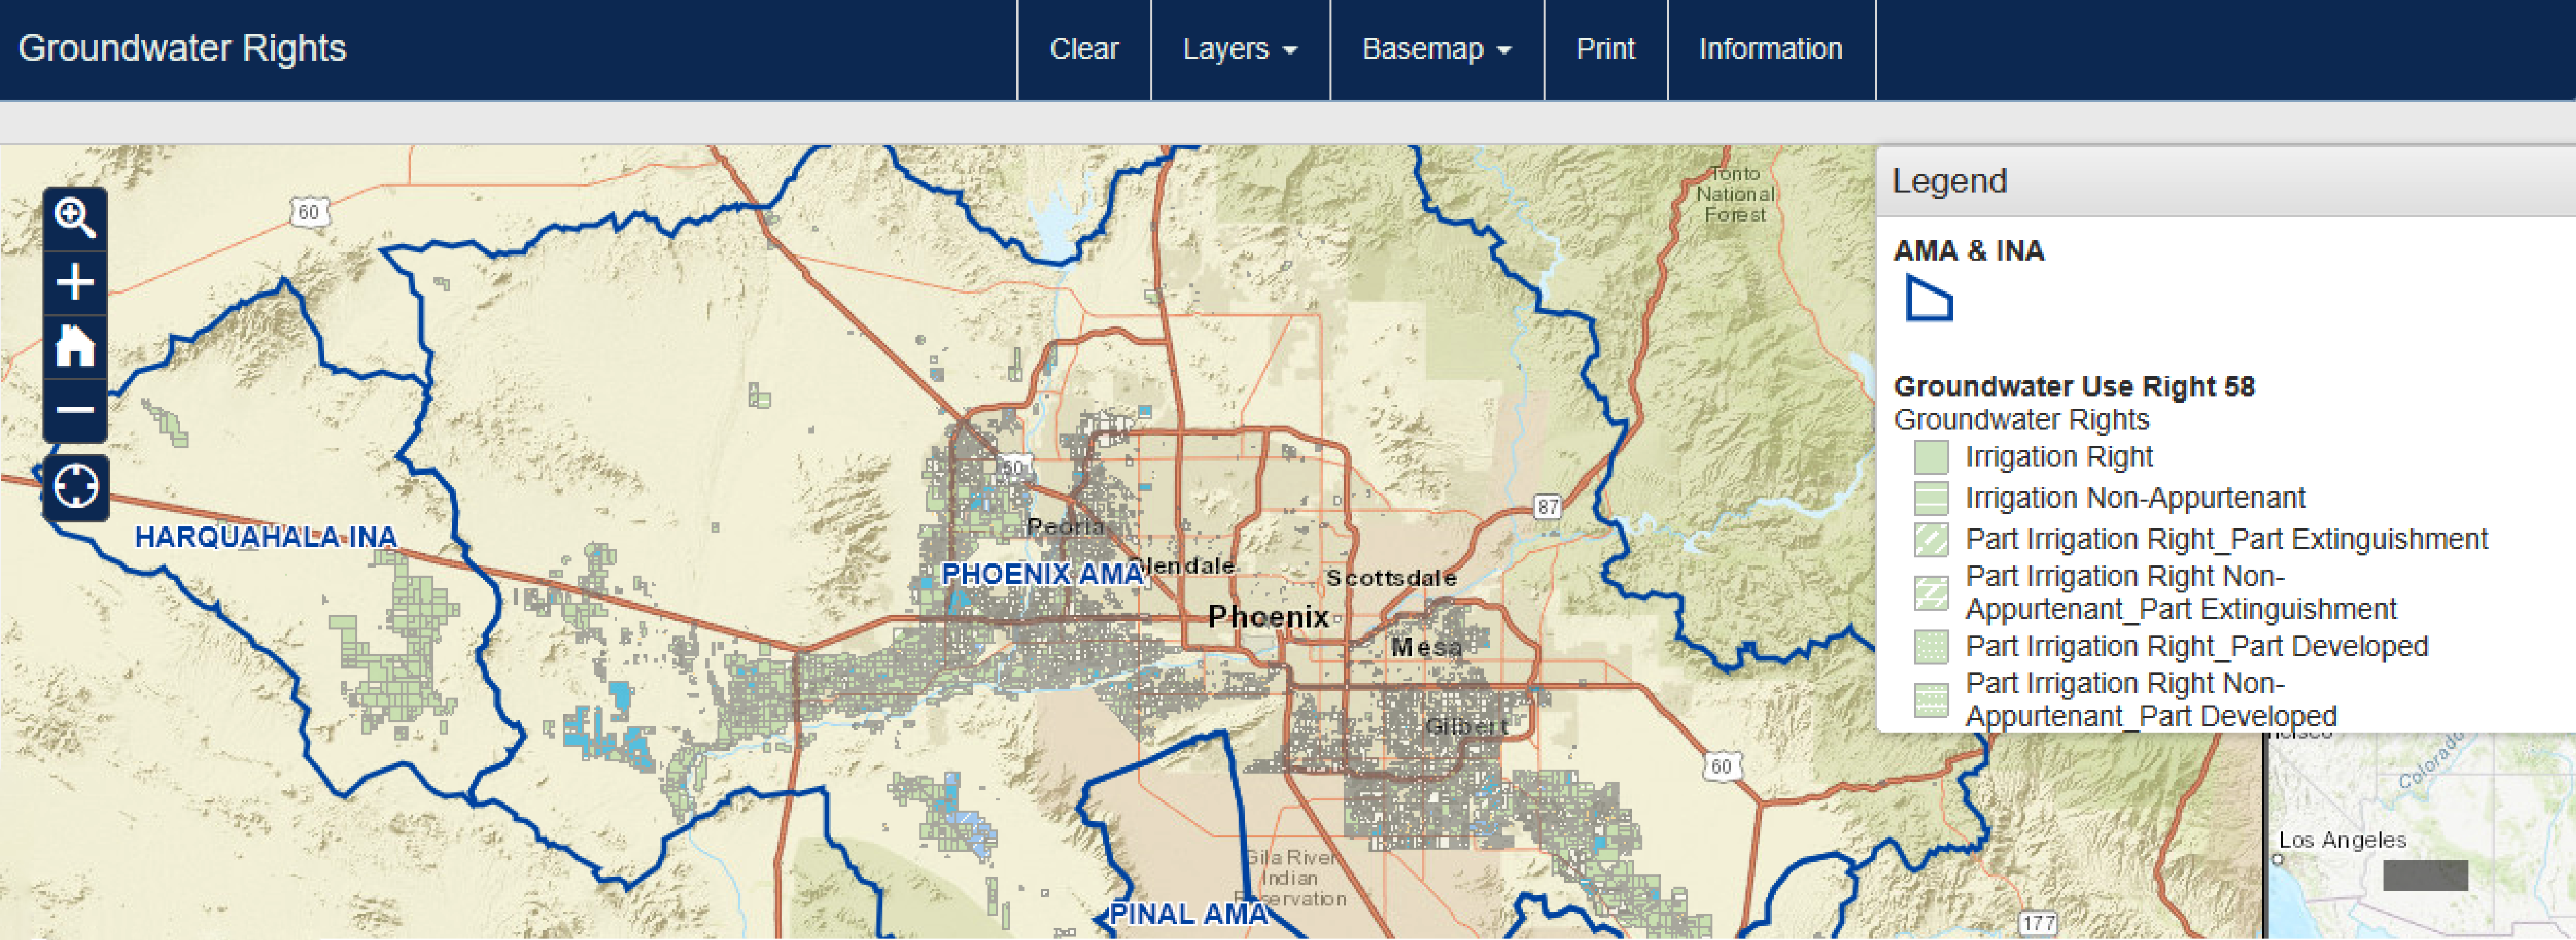 Interactive tool for searching groundwater-rights information now live on ADWR website